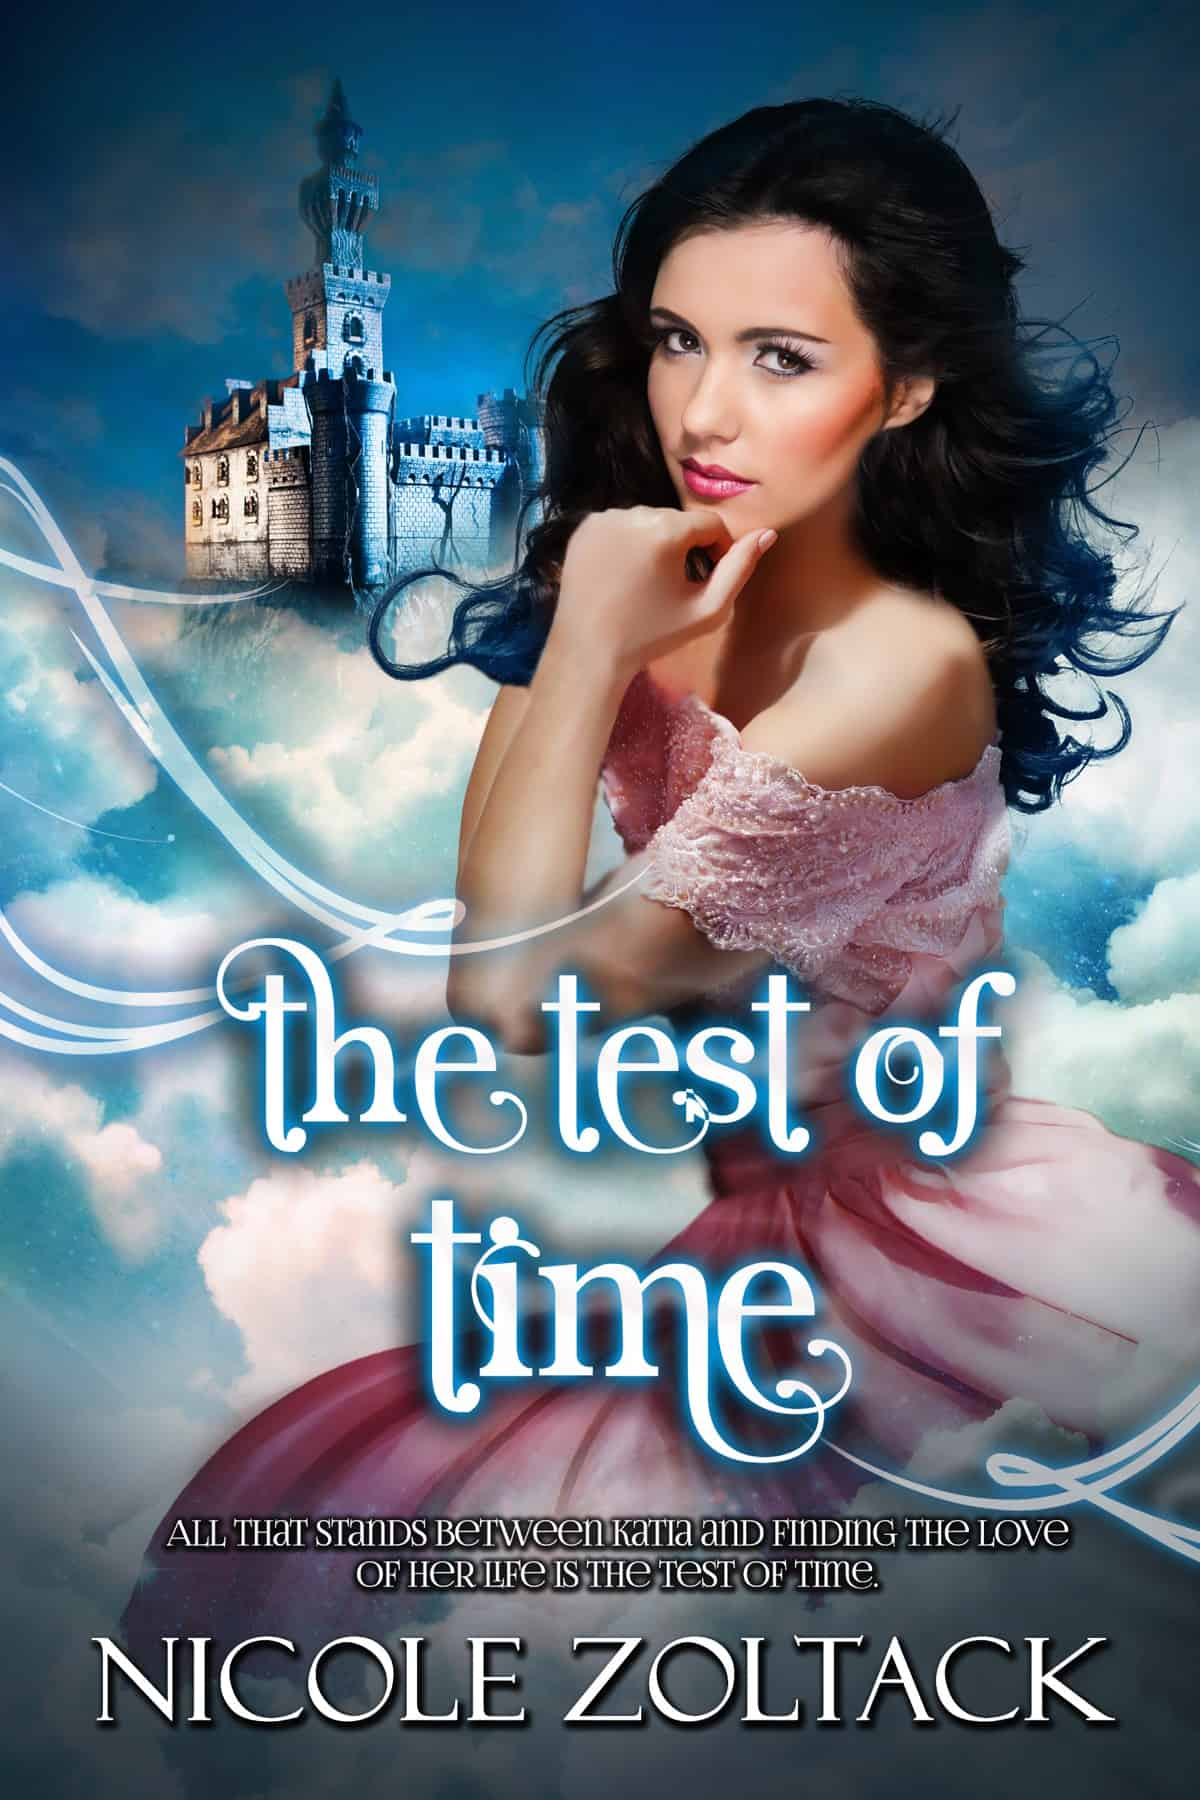 If you don't know Nicole Zoltack yet, you should. She writes super fun fantasy and has a bunch of books on the market for you to try out. Today, THE TEST OF TIME launches. I just love the cover of this. So if you're in the mood for a little romantic fantasy, pick this one […]